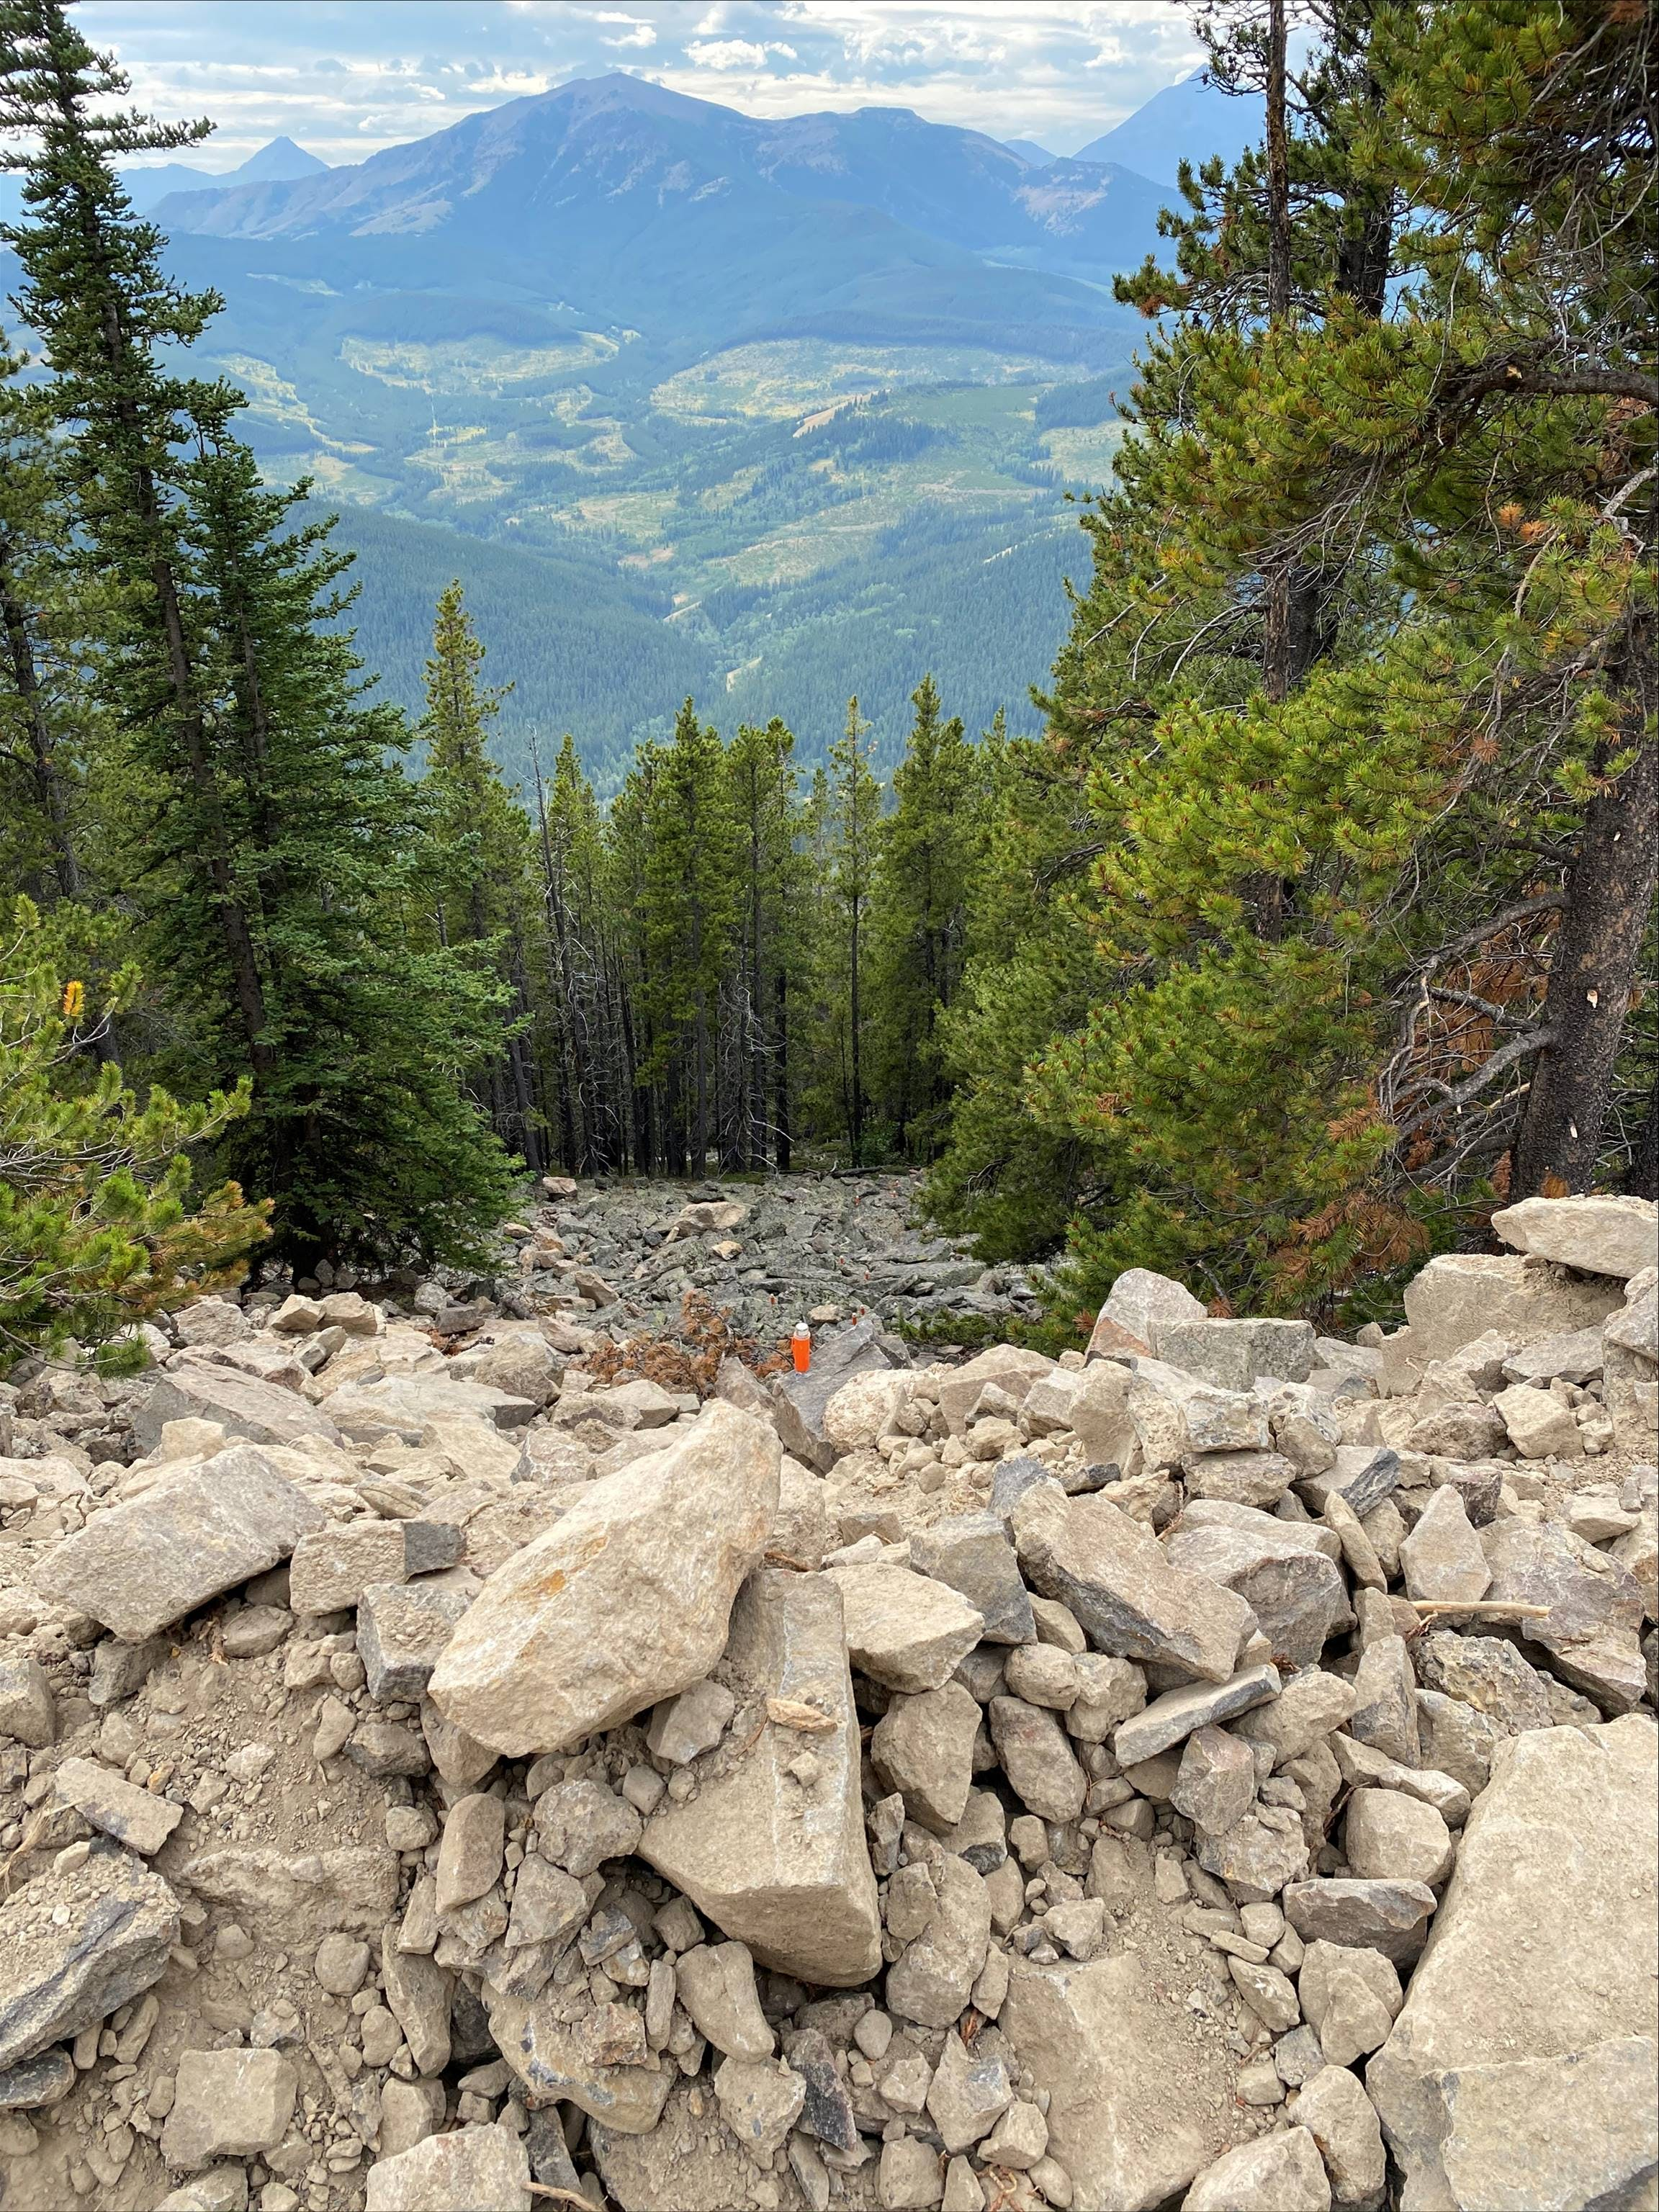 STRYDE seismic survey in Canadian Rocky mountains